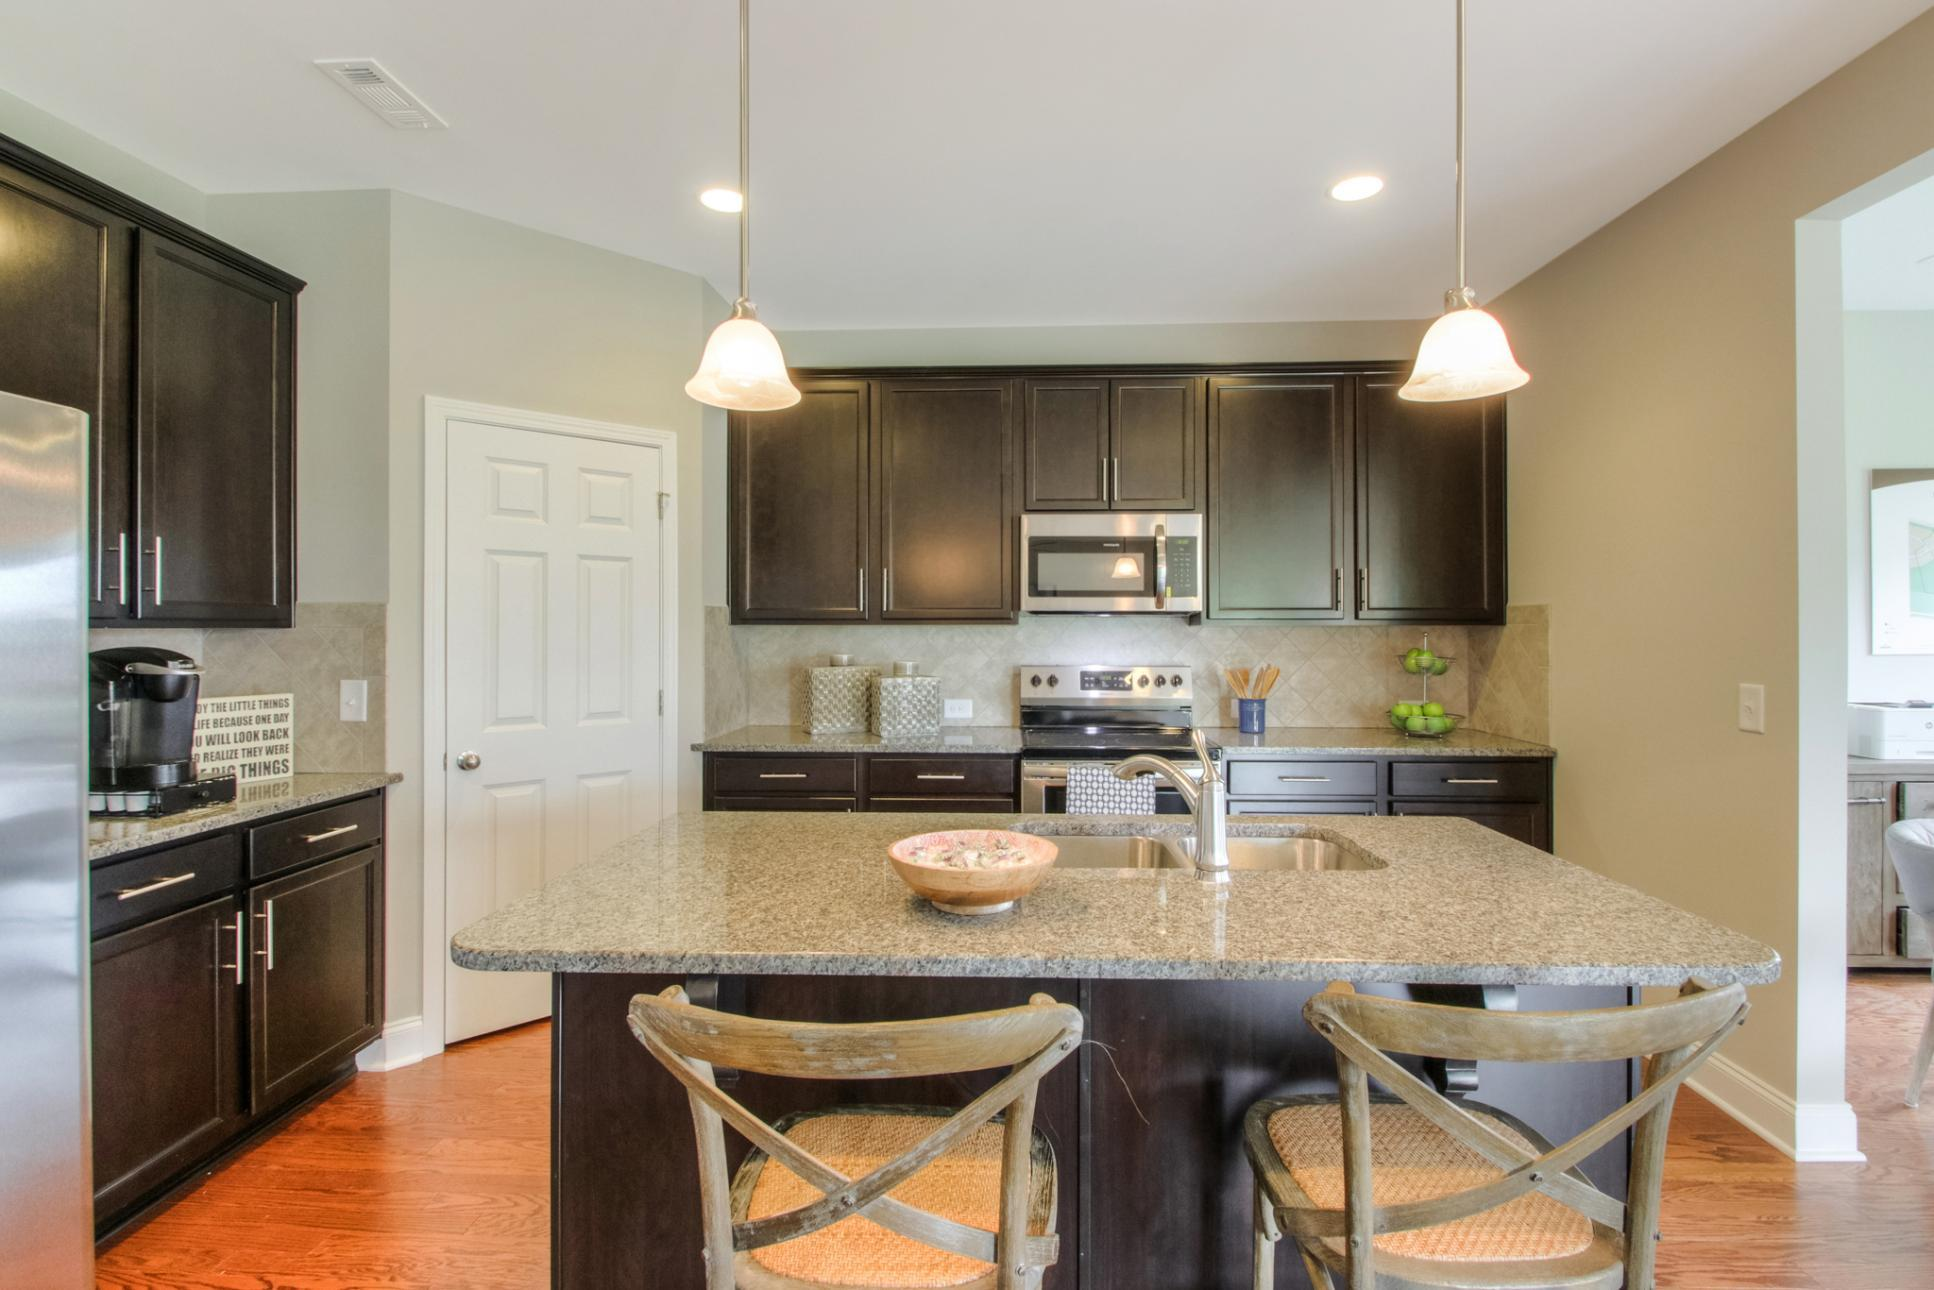 Kitchen featured in The Woodmont By Goodall Homes in Knoxville, TN